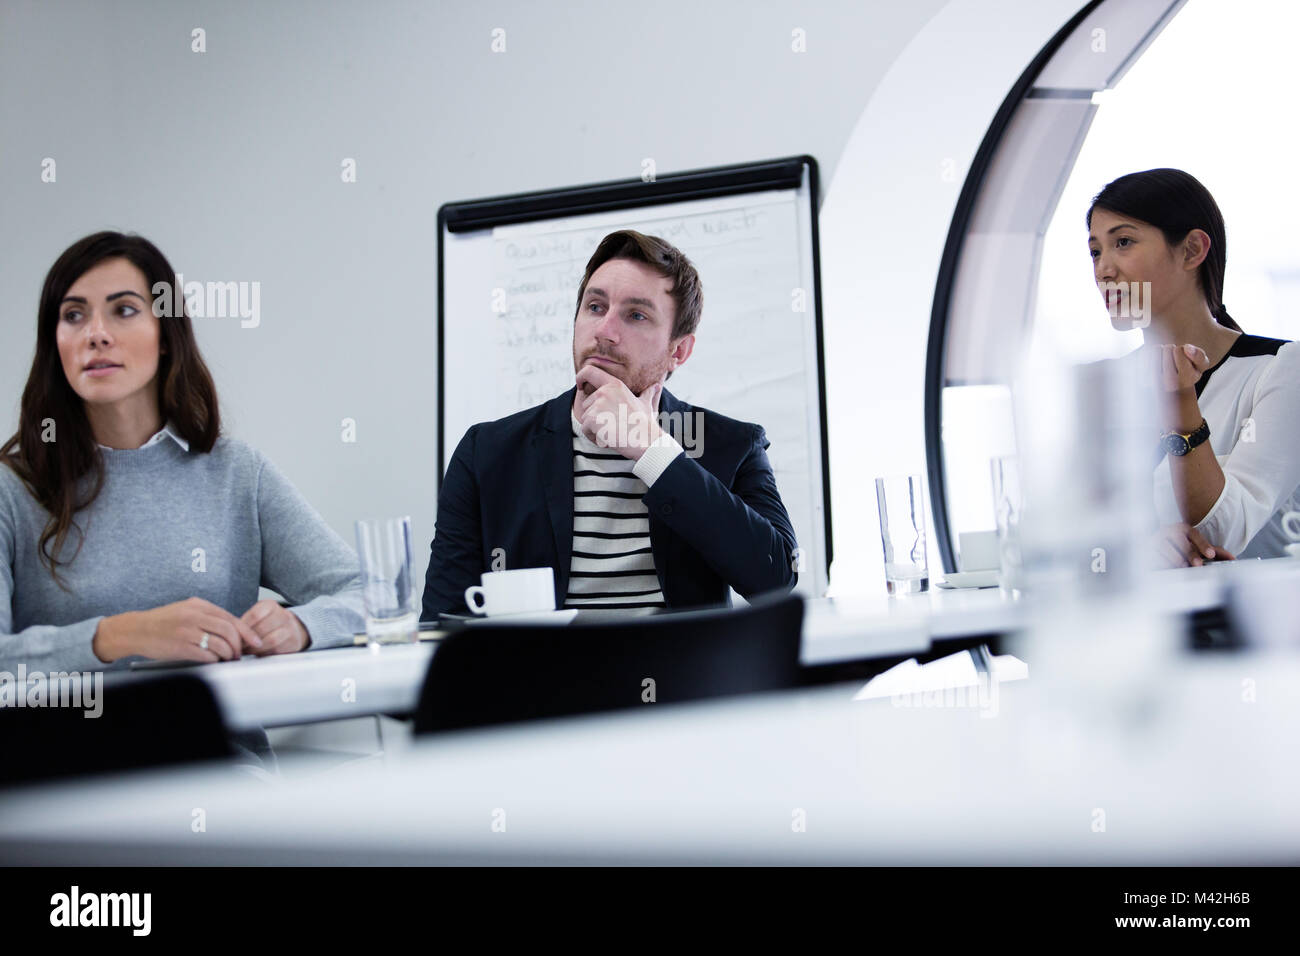 Colleagues listening in a business meeting - Stock Image